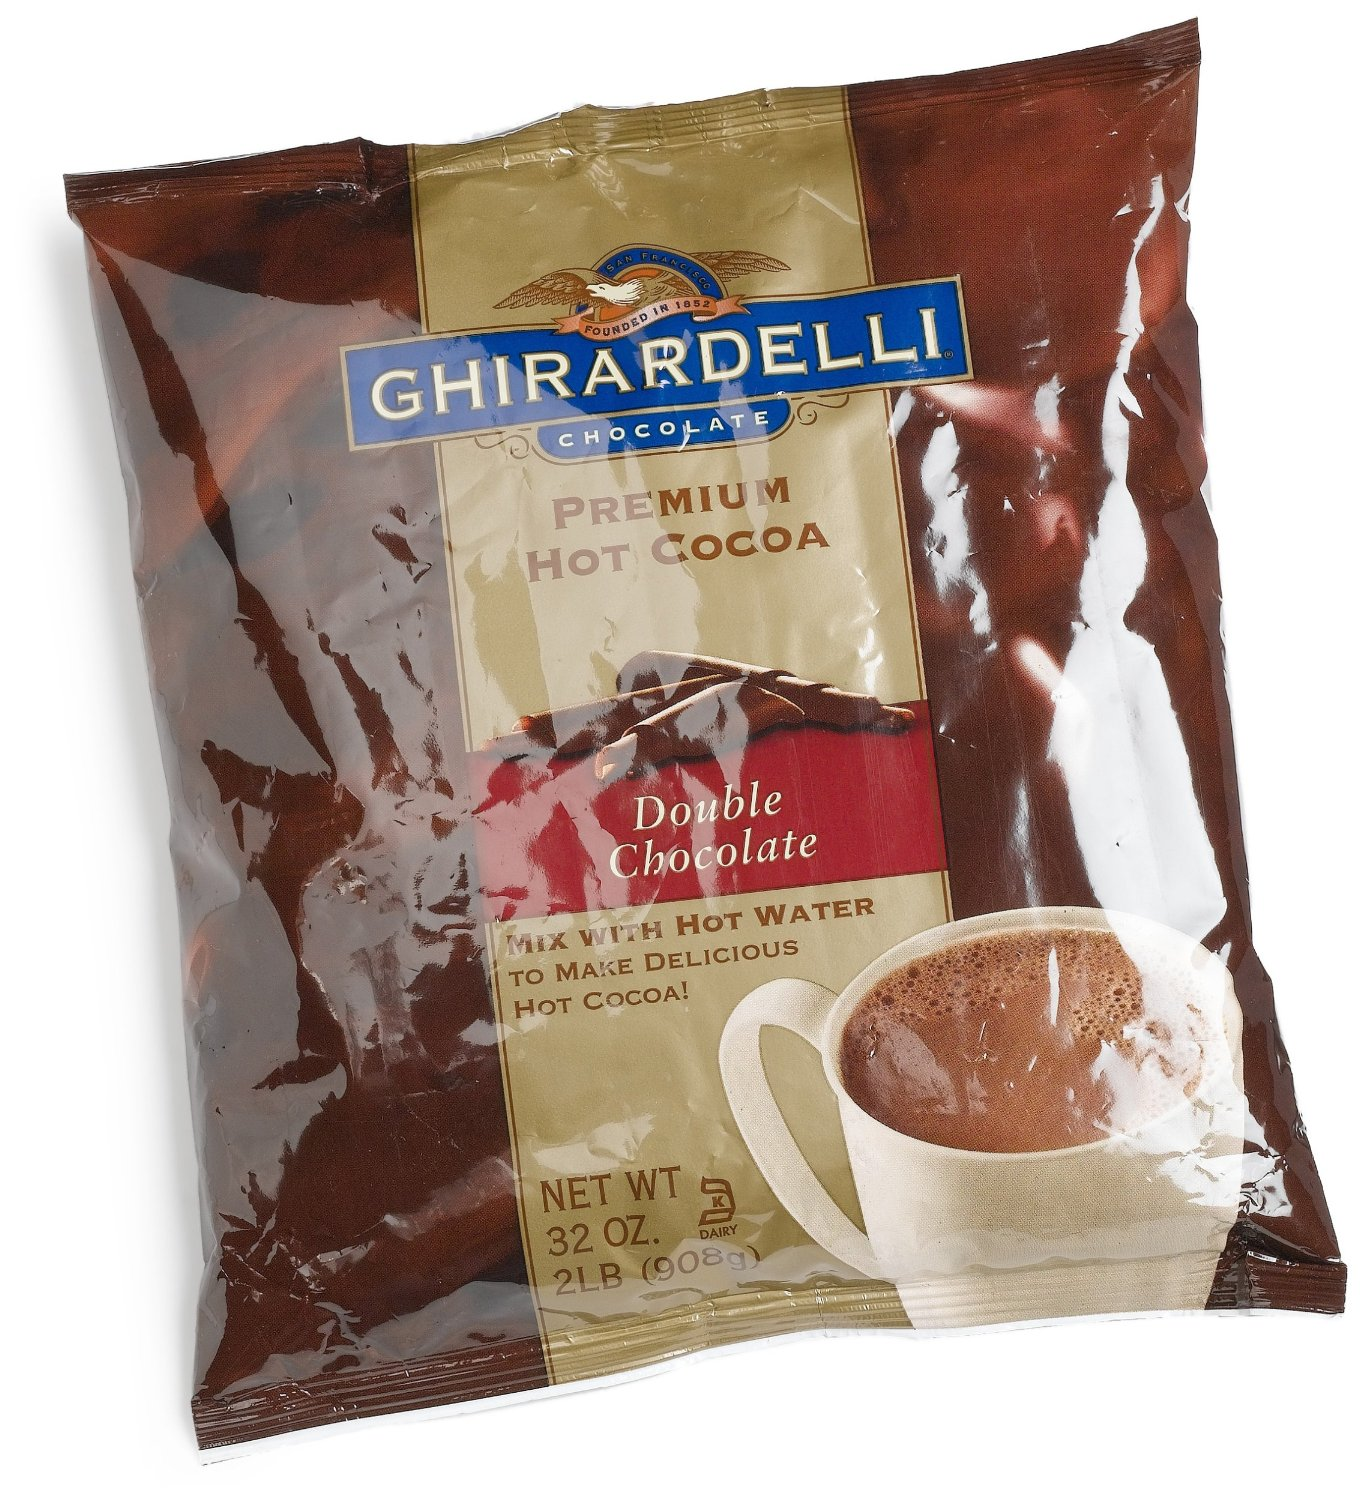 Ghirardelli Chocolate Premium Hot Cocoa Mix Double Chocolate, 32 Ounce by Ghirardelli